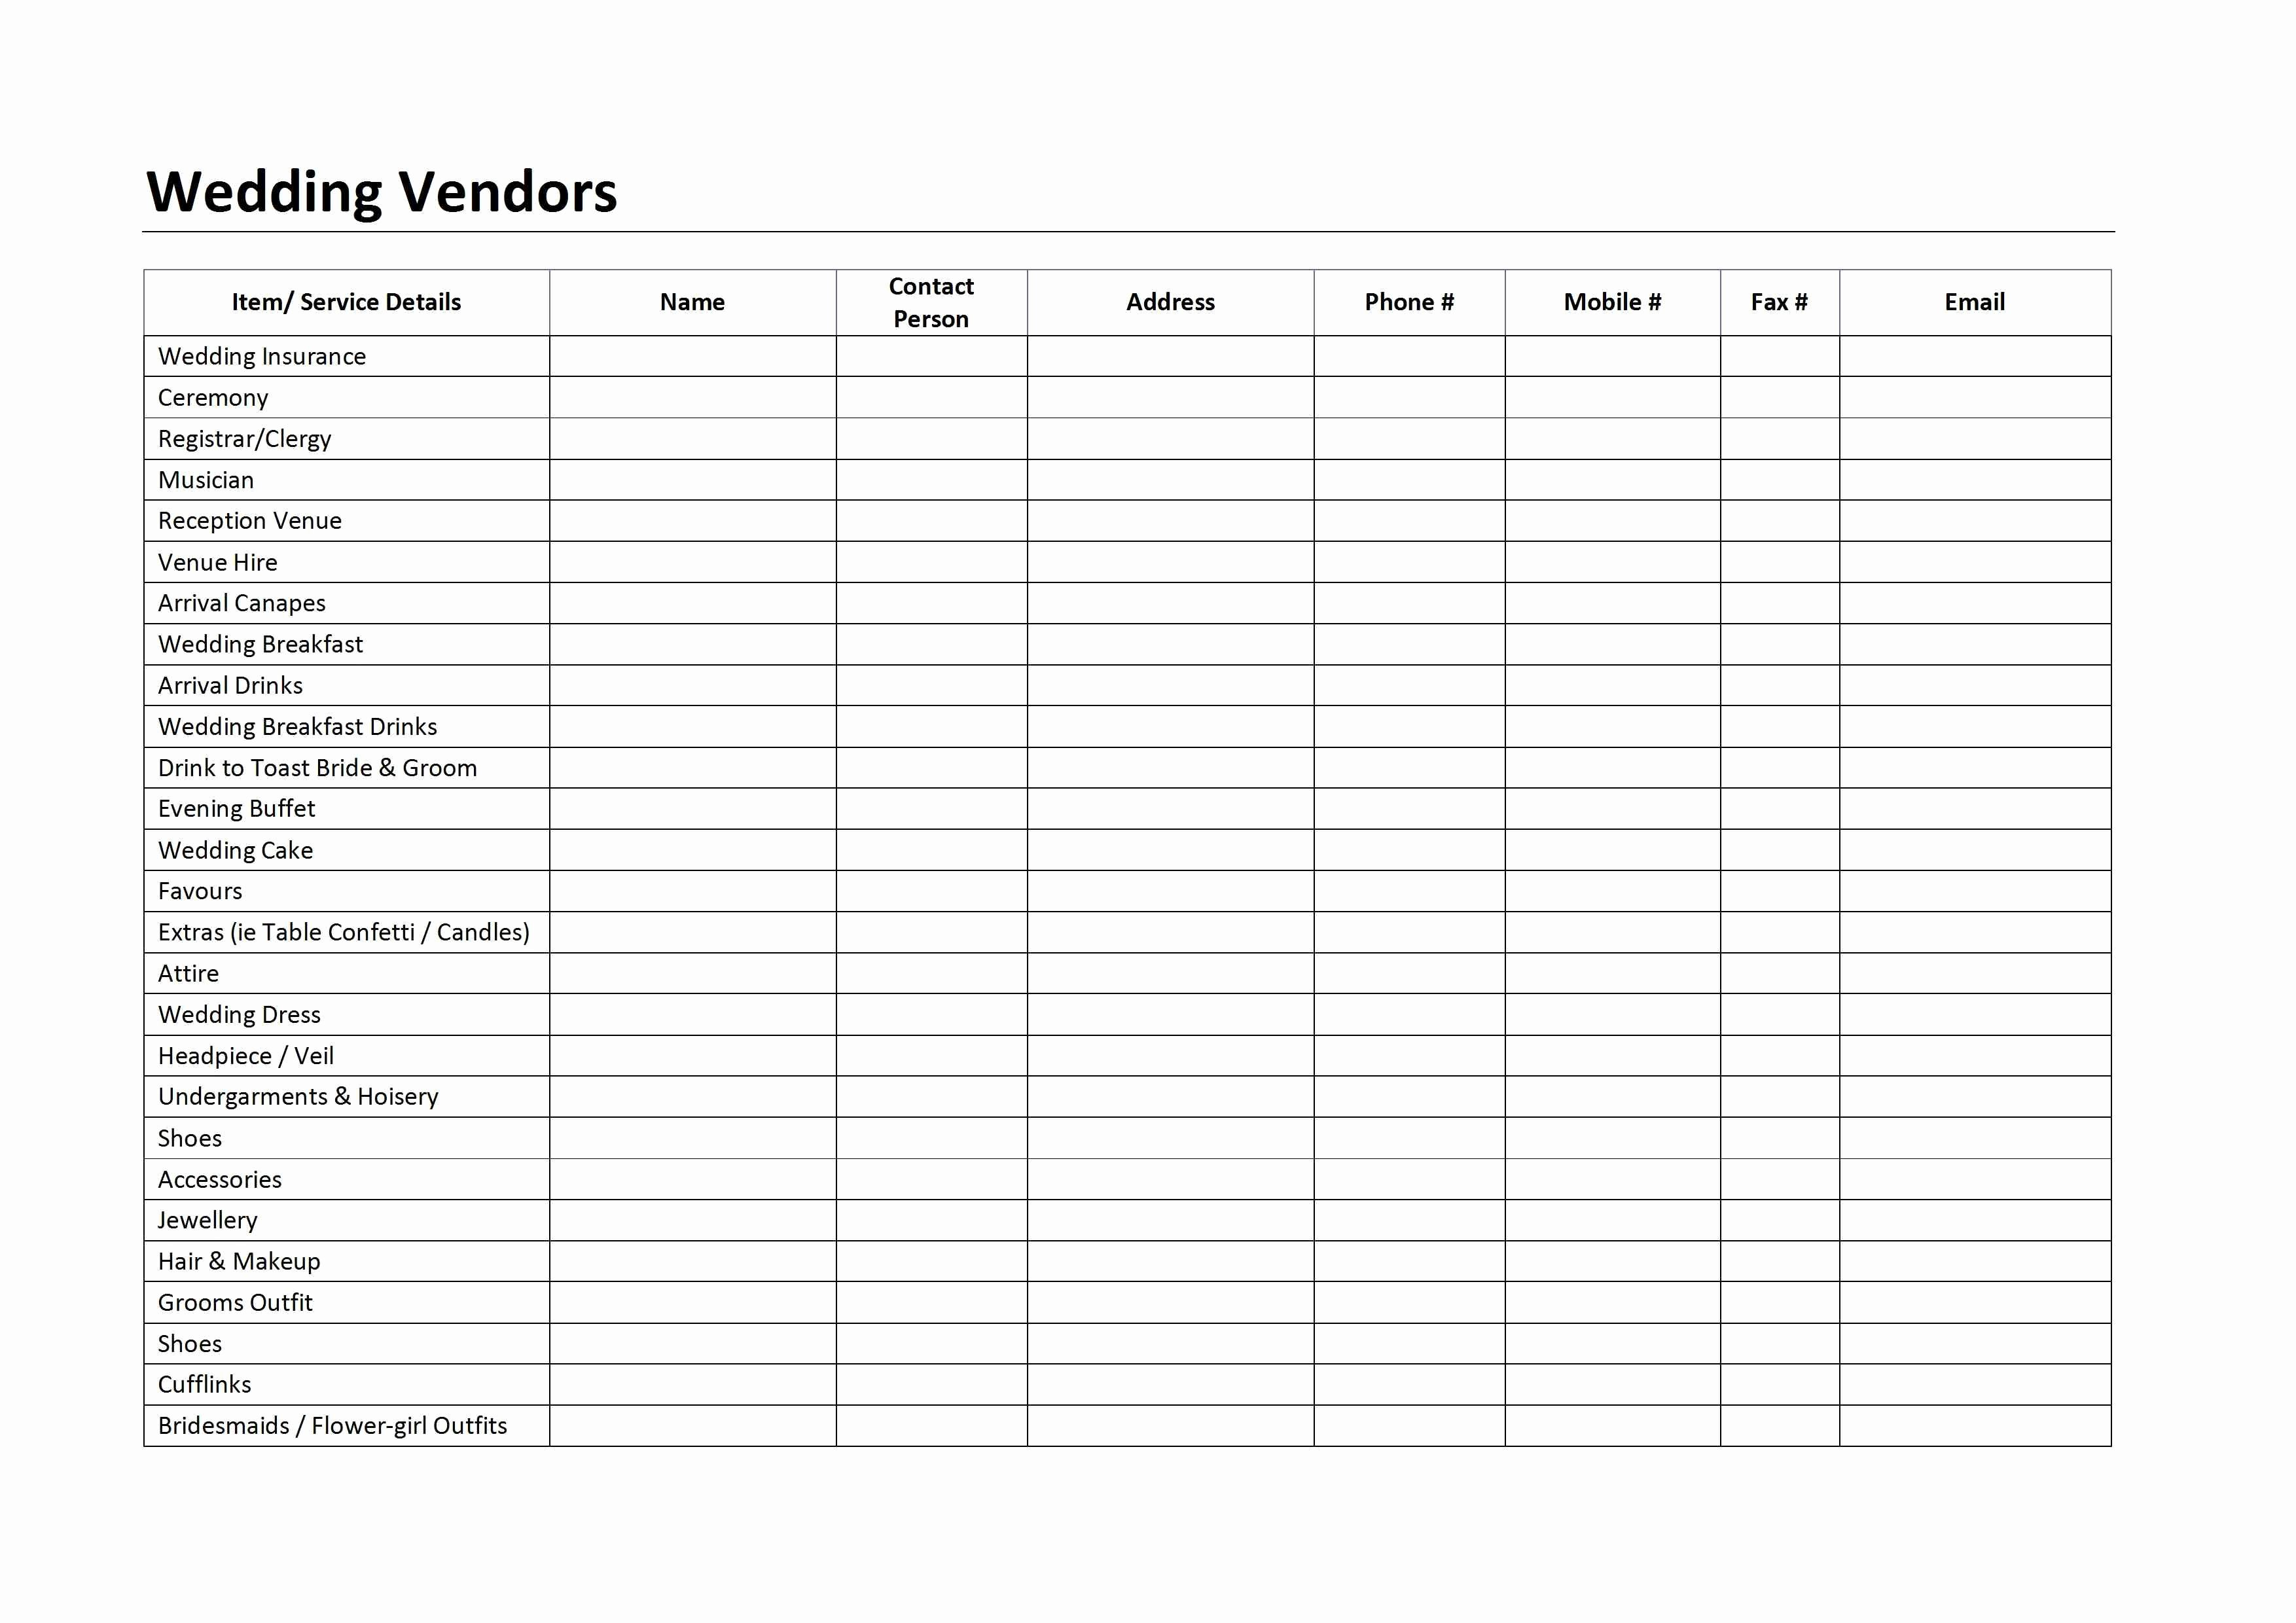 Wedding Vendor Contact List Template Best Of Log Archives Page 2 Of 3